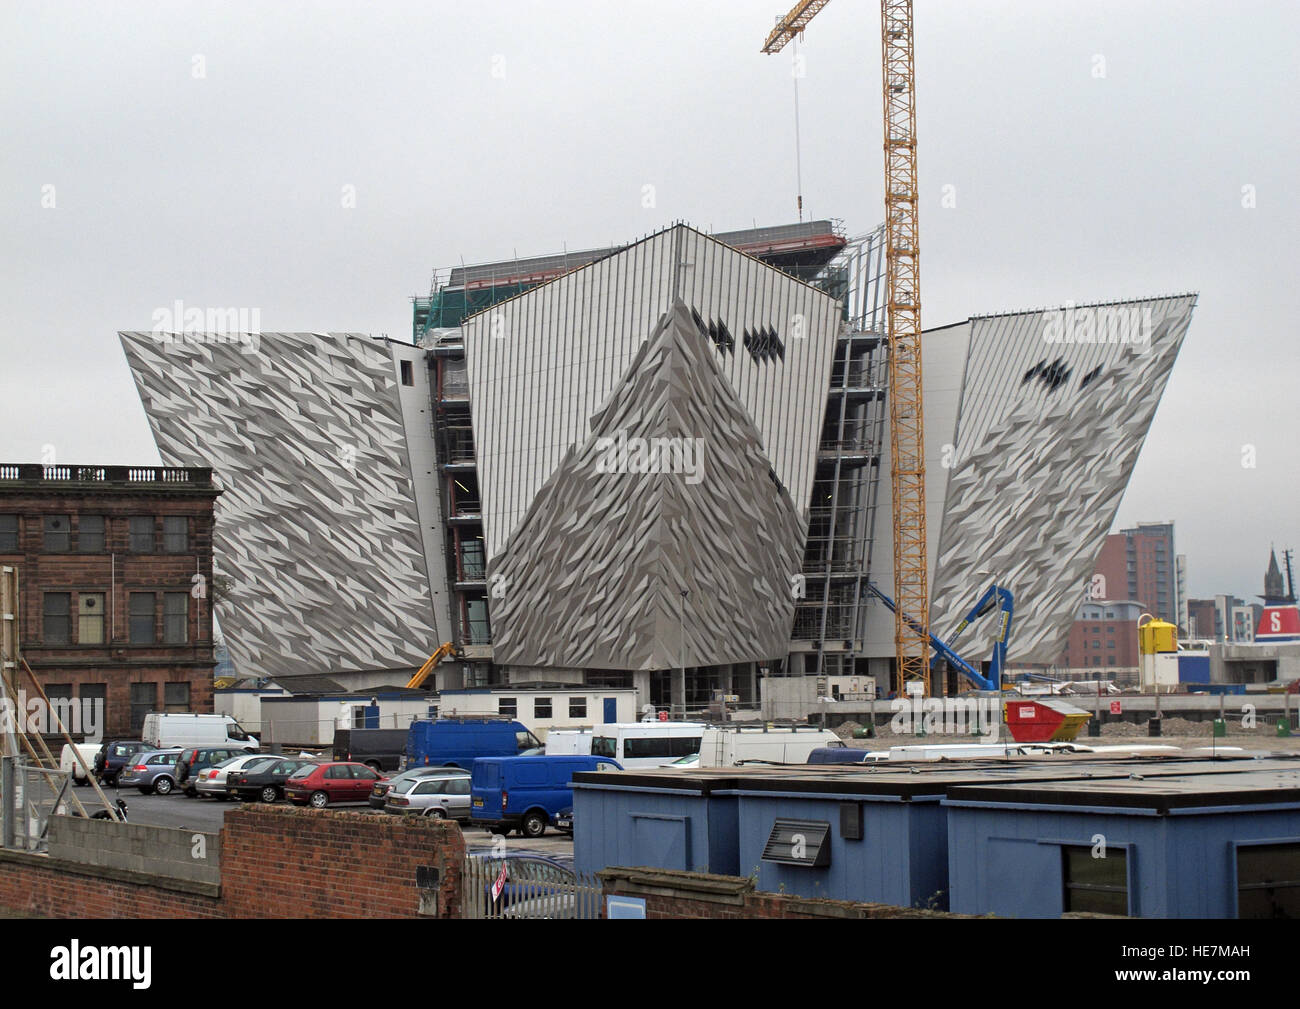 Tittanic,Titanic Quarter,line,White star Line,tourist,attraction,Tourist Attraction,New Tourist attraction,crane,cranes,building,architecture,silver,metal,gallery,galleries,slipways,and,graving docks,docks,derelict land,regeneration,Harcourt Developments,GoTonySmith,@HotpixUK,Tony,Smith,UK,GB,Great,Britain,United,Kingdom,Irish,British,Ireland,problem,with,problem with,issue with,NI,Northern,Northern Ireland,Belfast,City,Centre,museum,New Museum,honour,wall,walls,tribute,West,Beal,feirste,tour,tourism,tourists,urban,six,counties,6,backdrop,county,Antrim,Signature,Project,Northern Ireland Executive,Titanic Belfast,Titanic Foundation,Foundation,Tourist Board,Buy Pictures of,Buy Images Of,Images of,Stock Images,Tony Smith,United Kingdom,Great Britain,British Isles